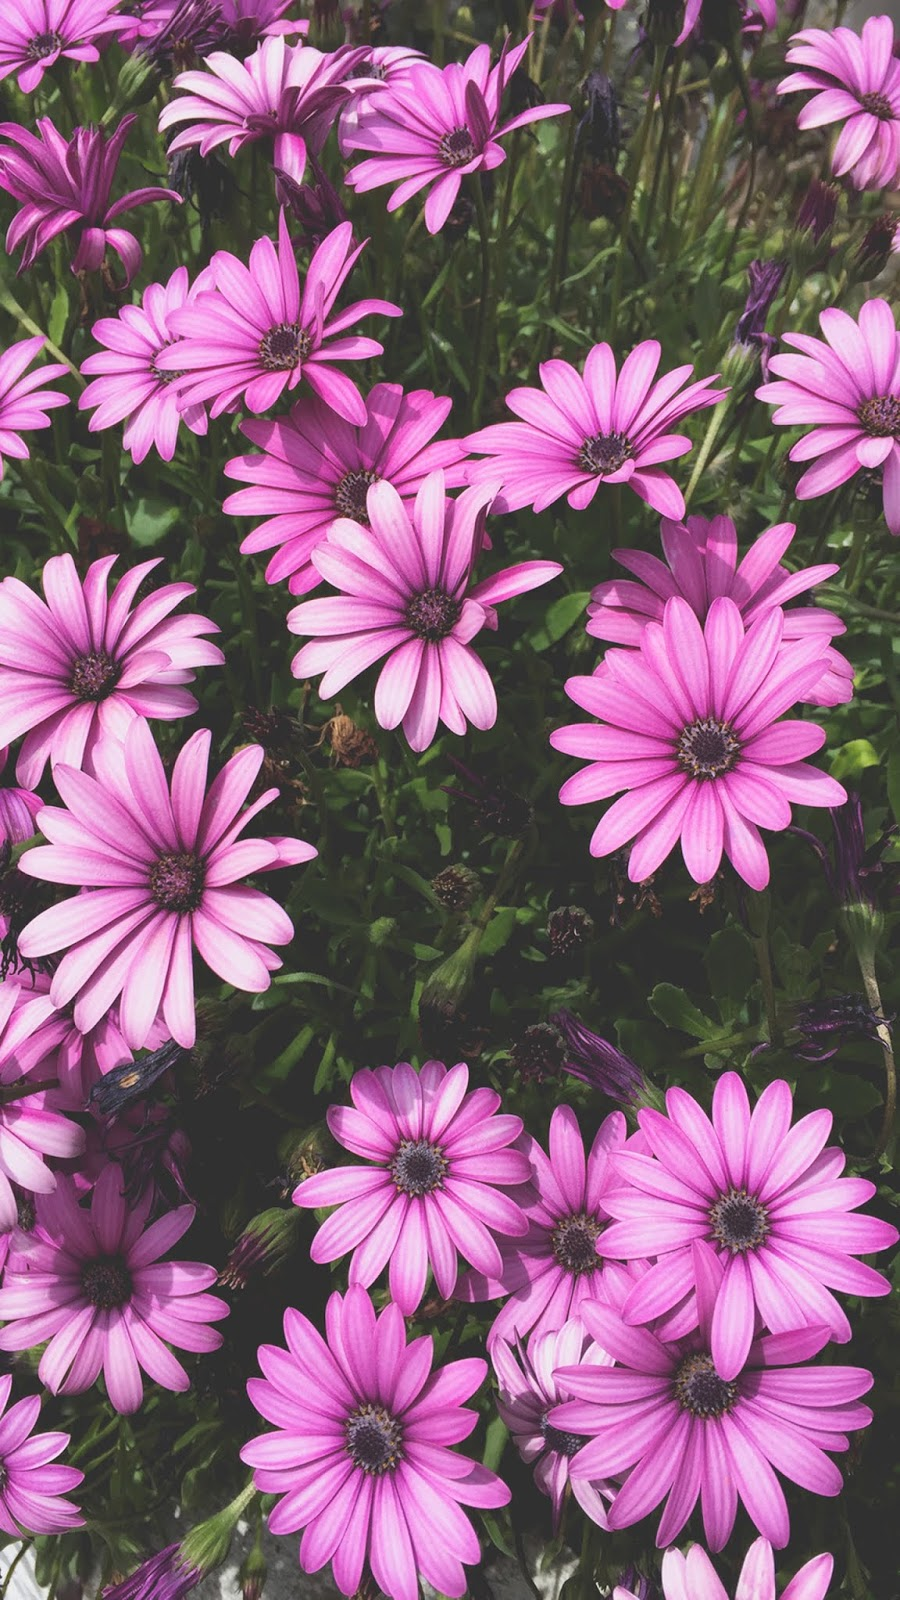 Aesthetic flowers